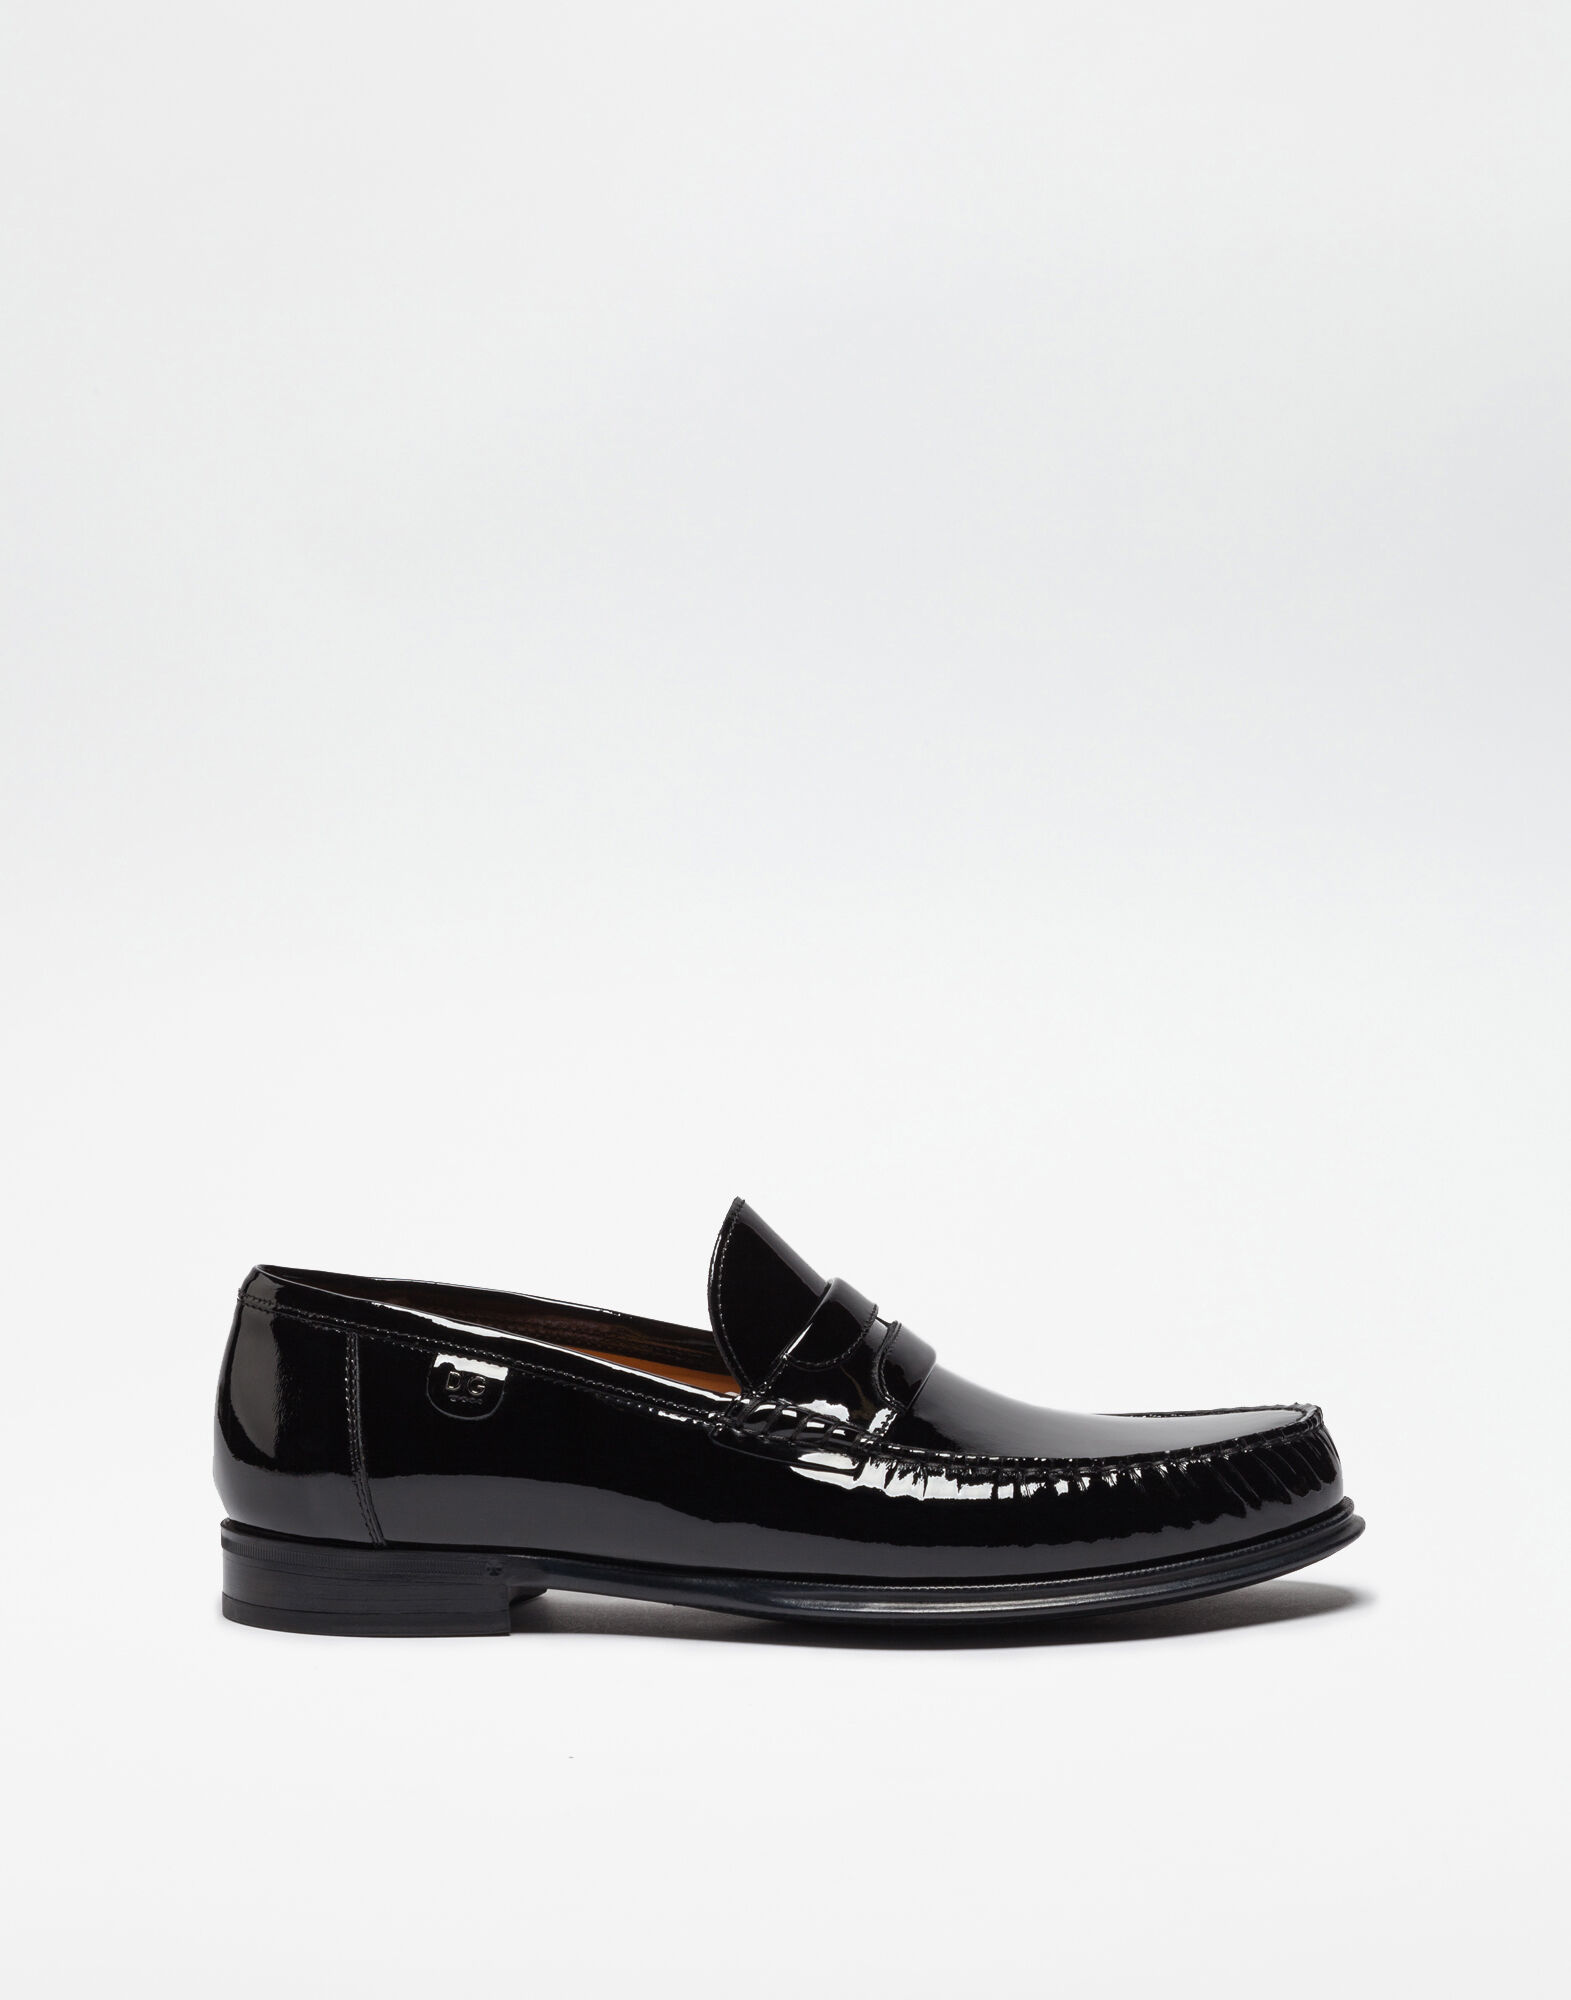 PATENT LEATHER MOCASSINS